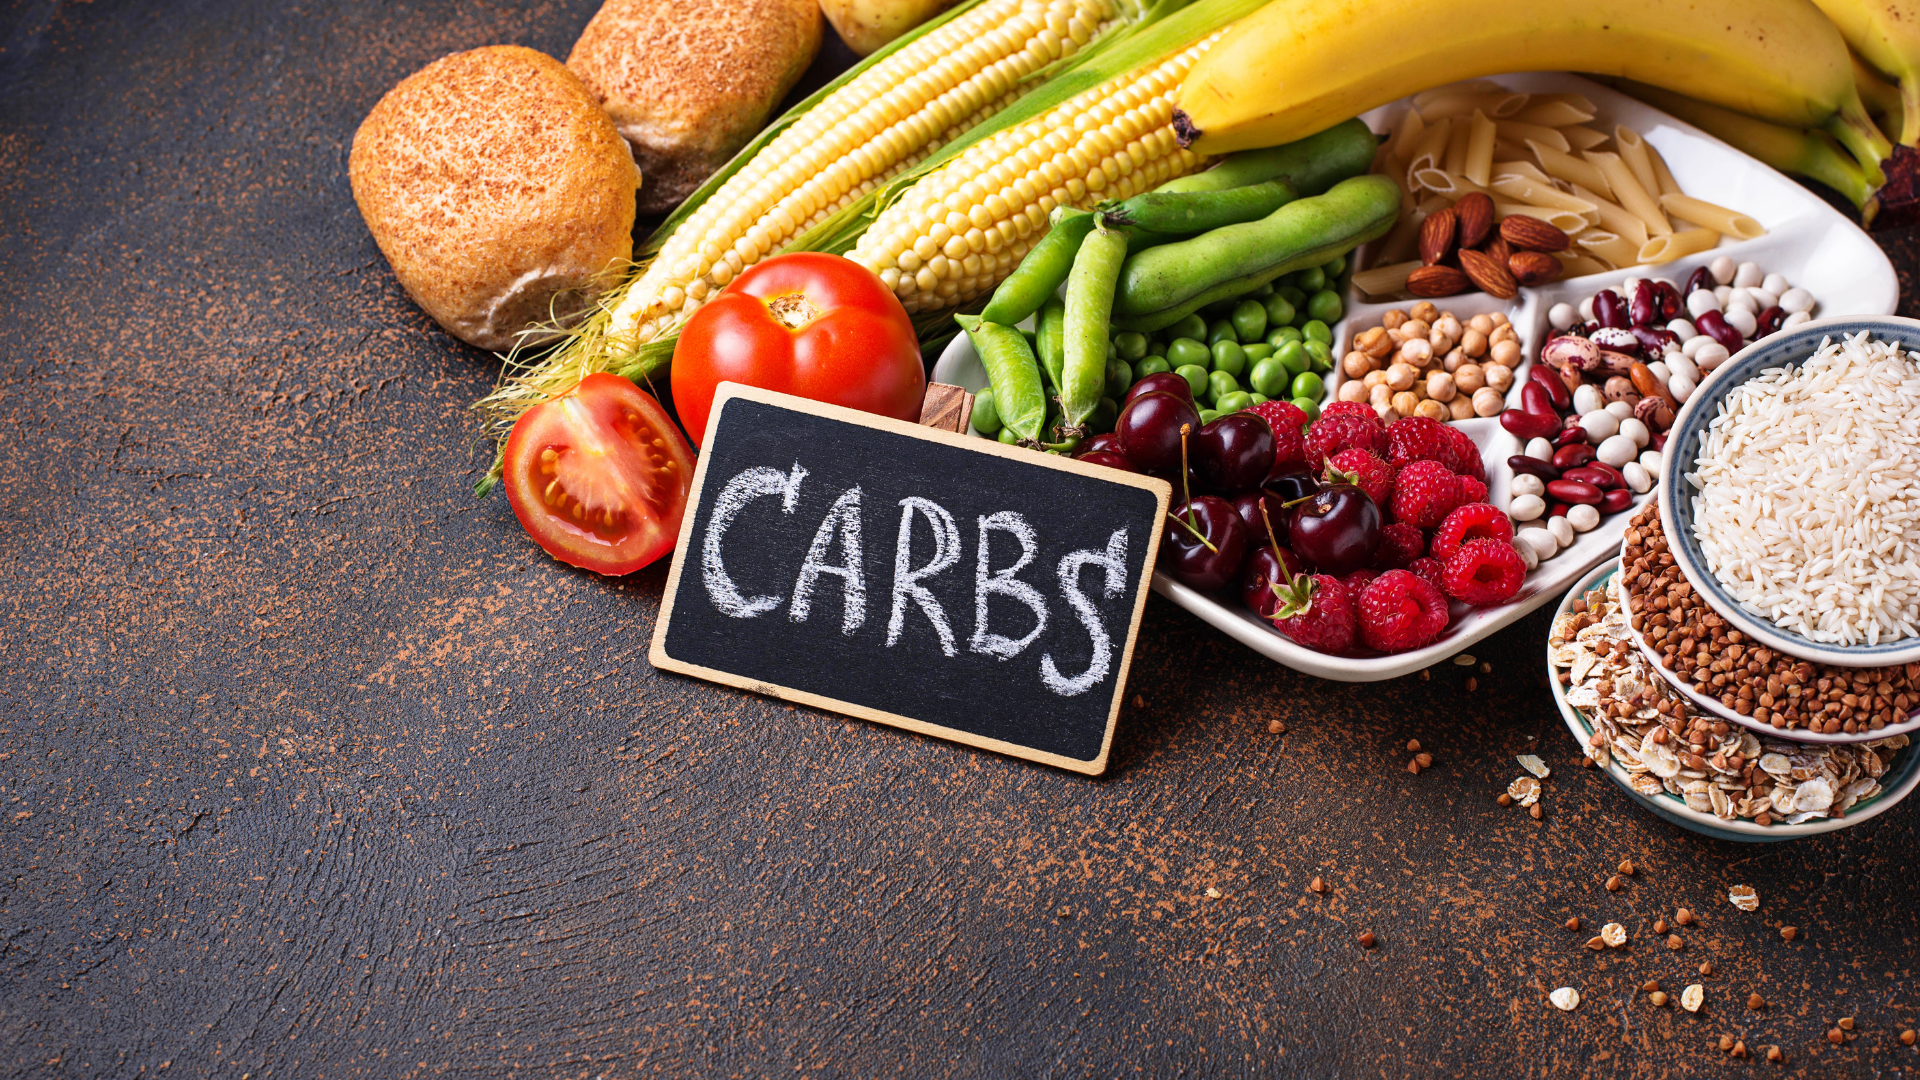 Images of carbohydrates like corn, rice and fruit